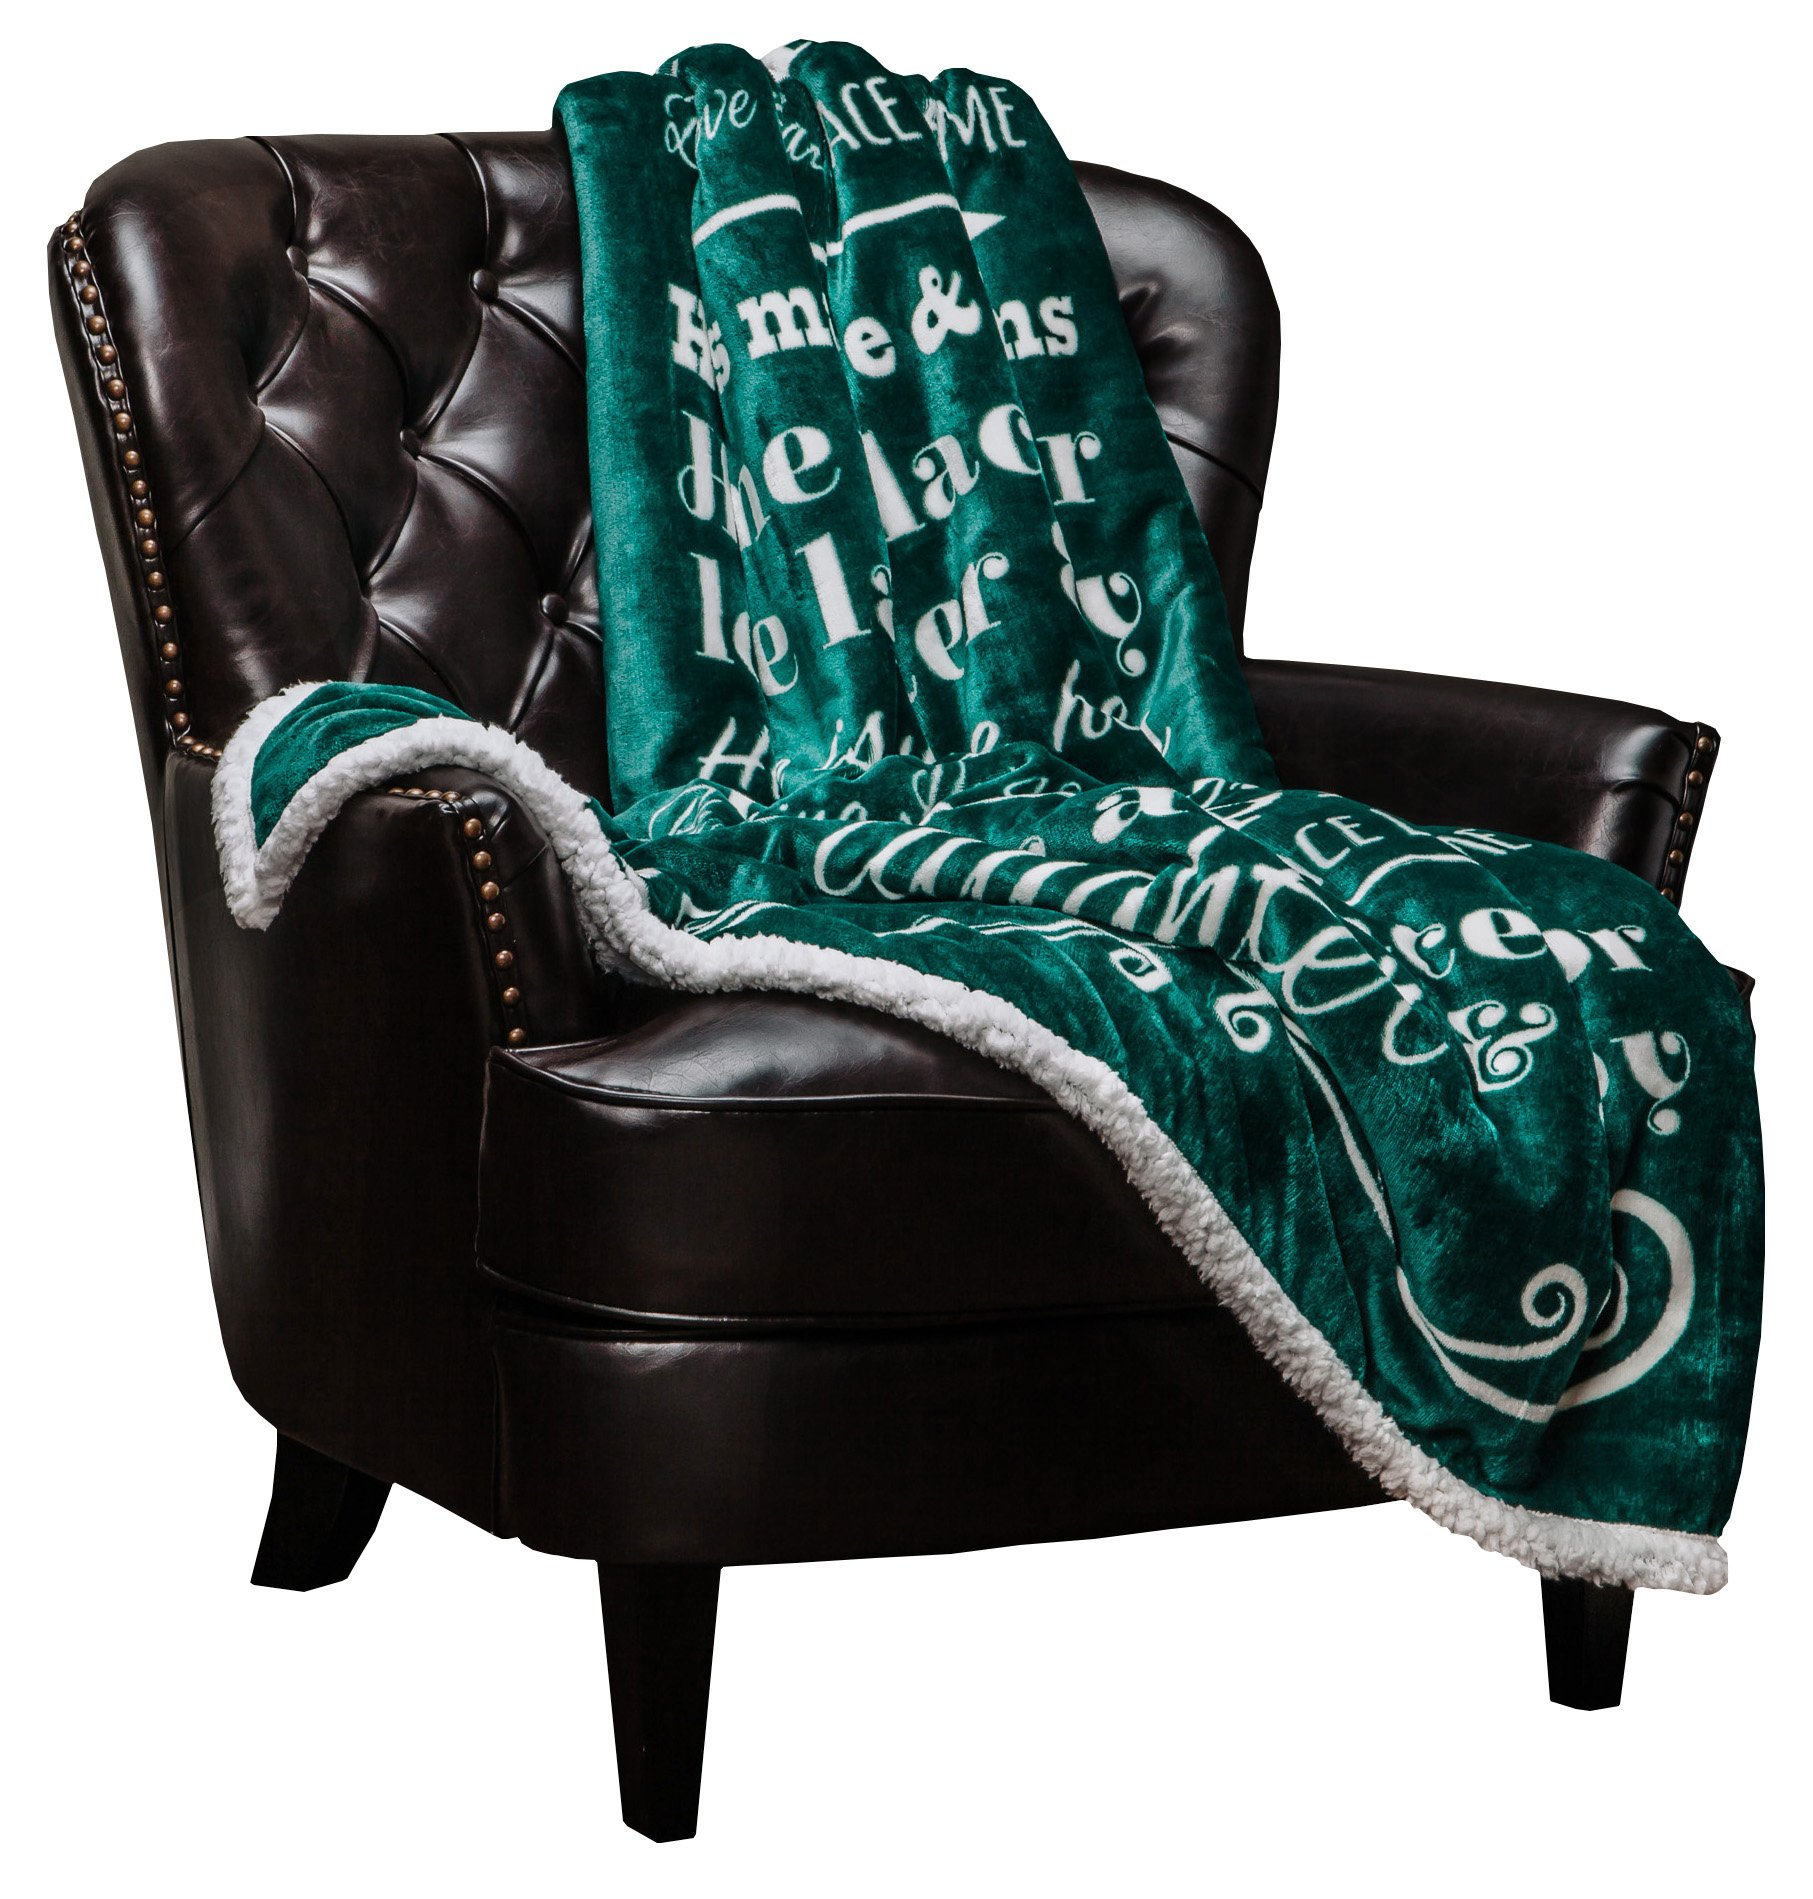 Chanasya Home Sweet Home Message Print Super Soft Plush Fleece Microfiber Sherpa Reversible Throw Blanket For Couch Bed Sofa Chair Great House Warming Gift Blanket - Evergreen Teal